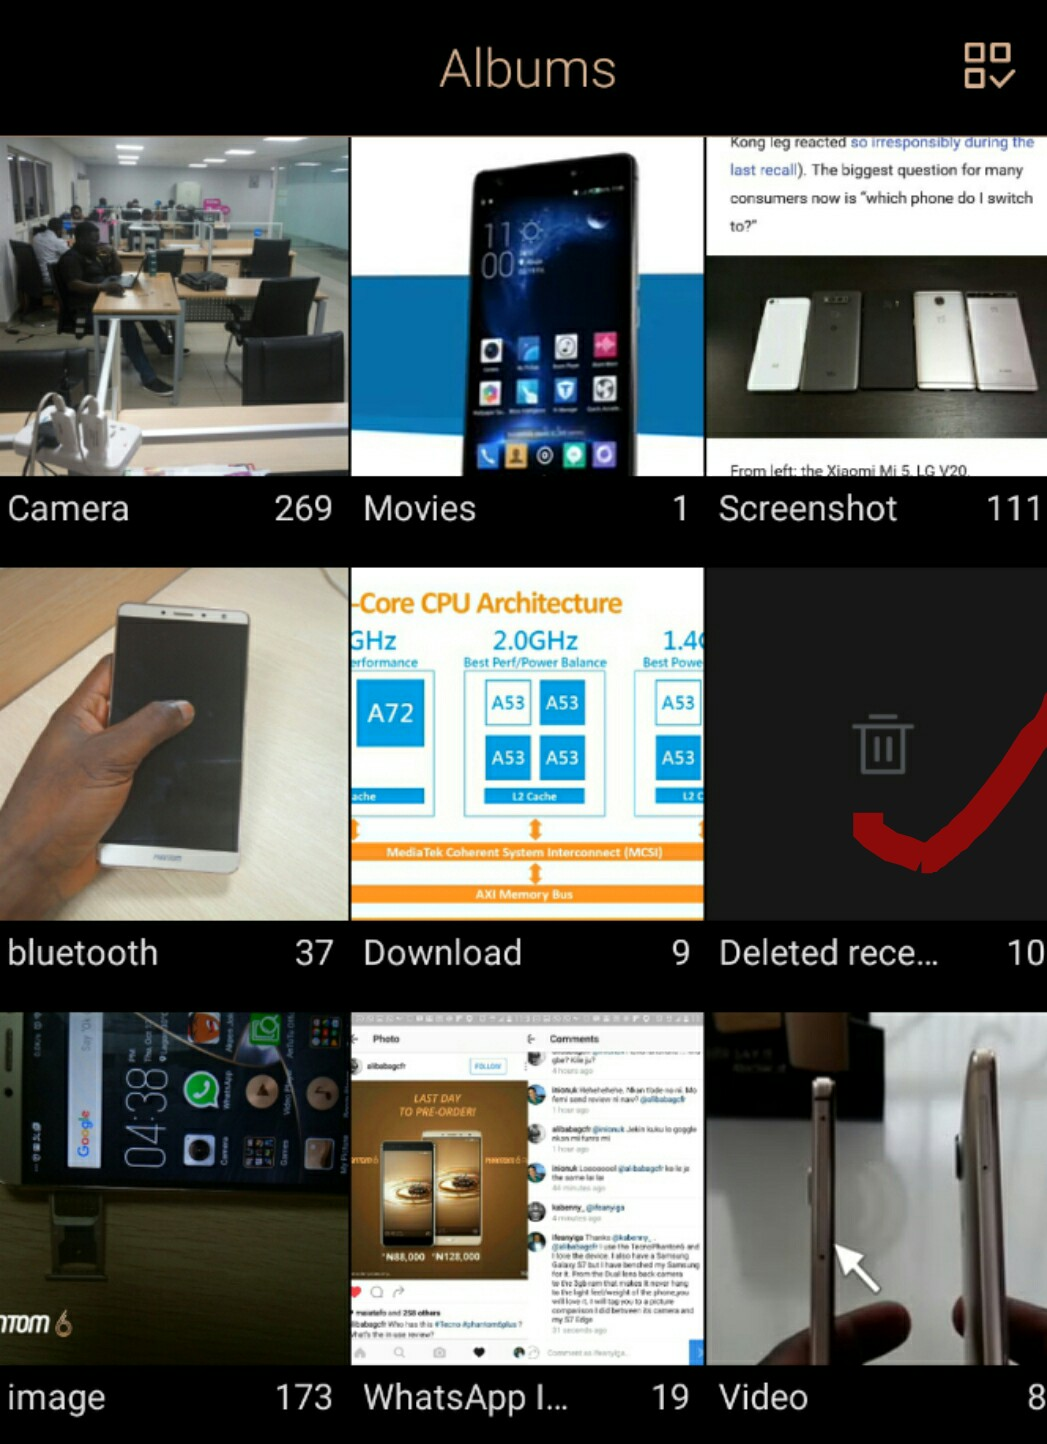 The Gallery App on Tecno Latest devices - TECNO MOBILE